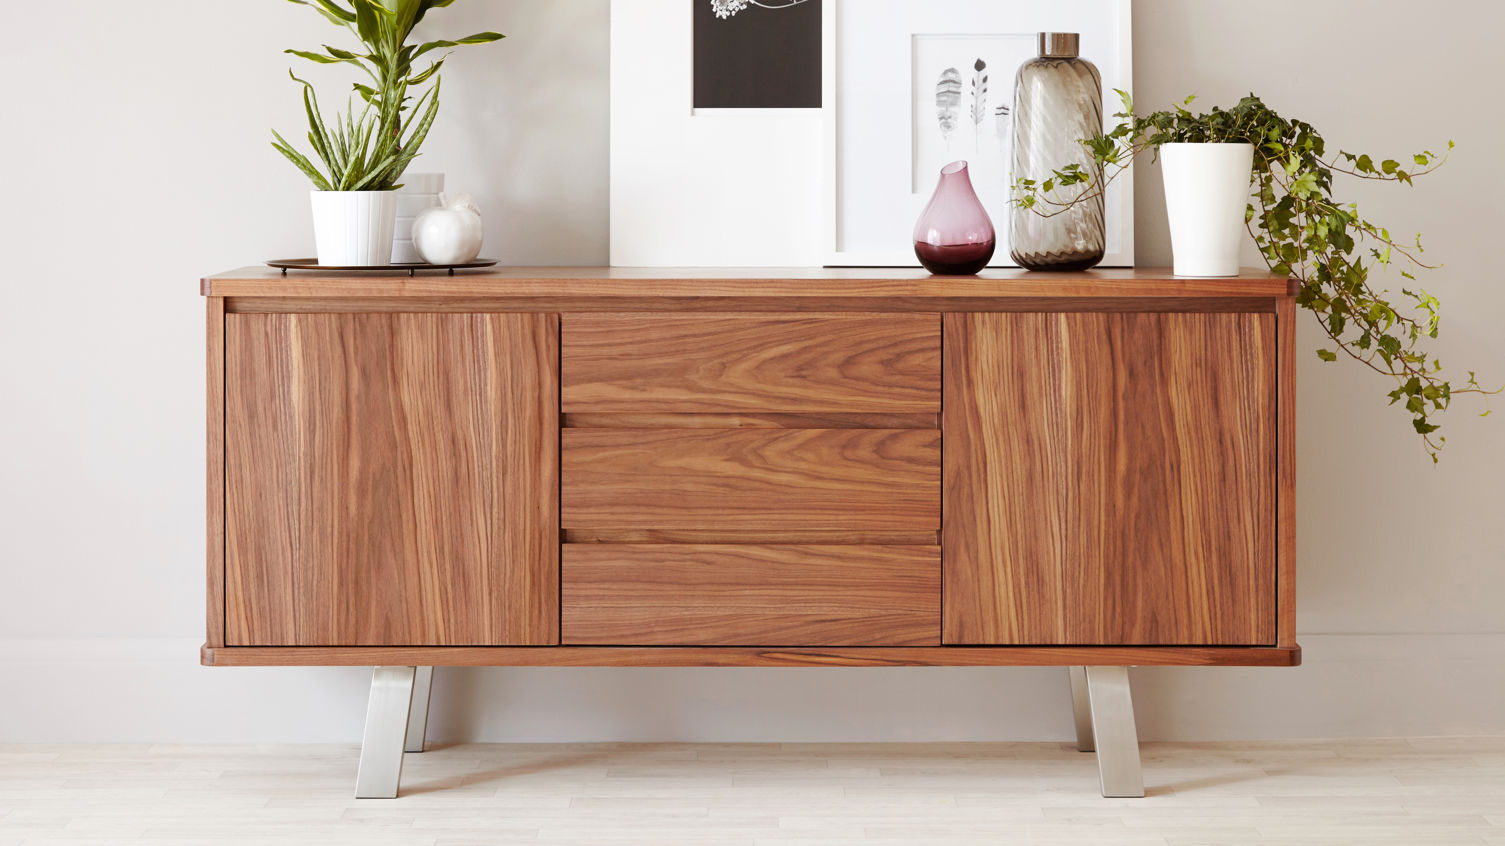 Assi Walnut Wood Veneer Sideboard